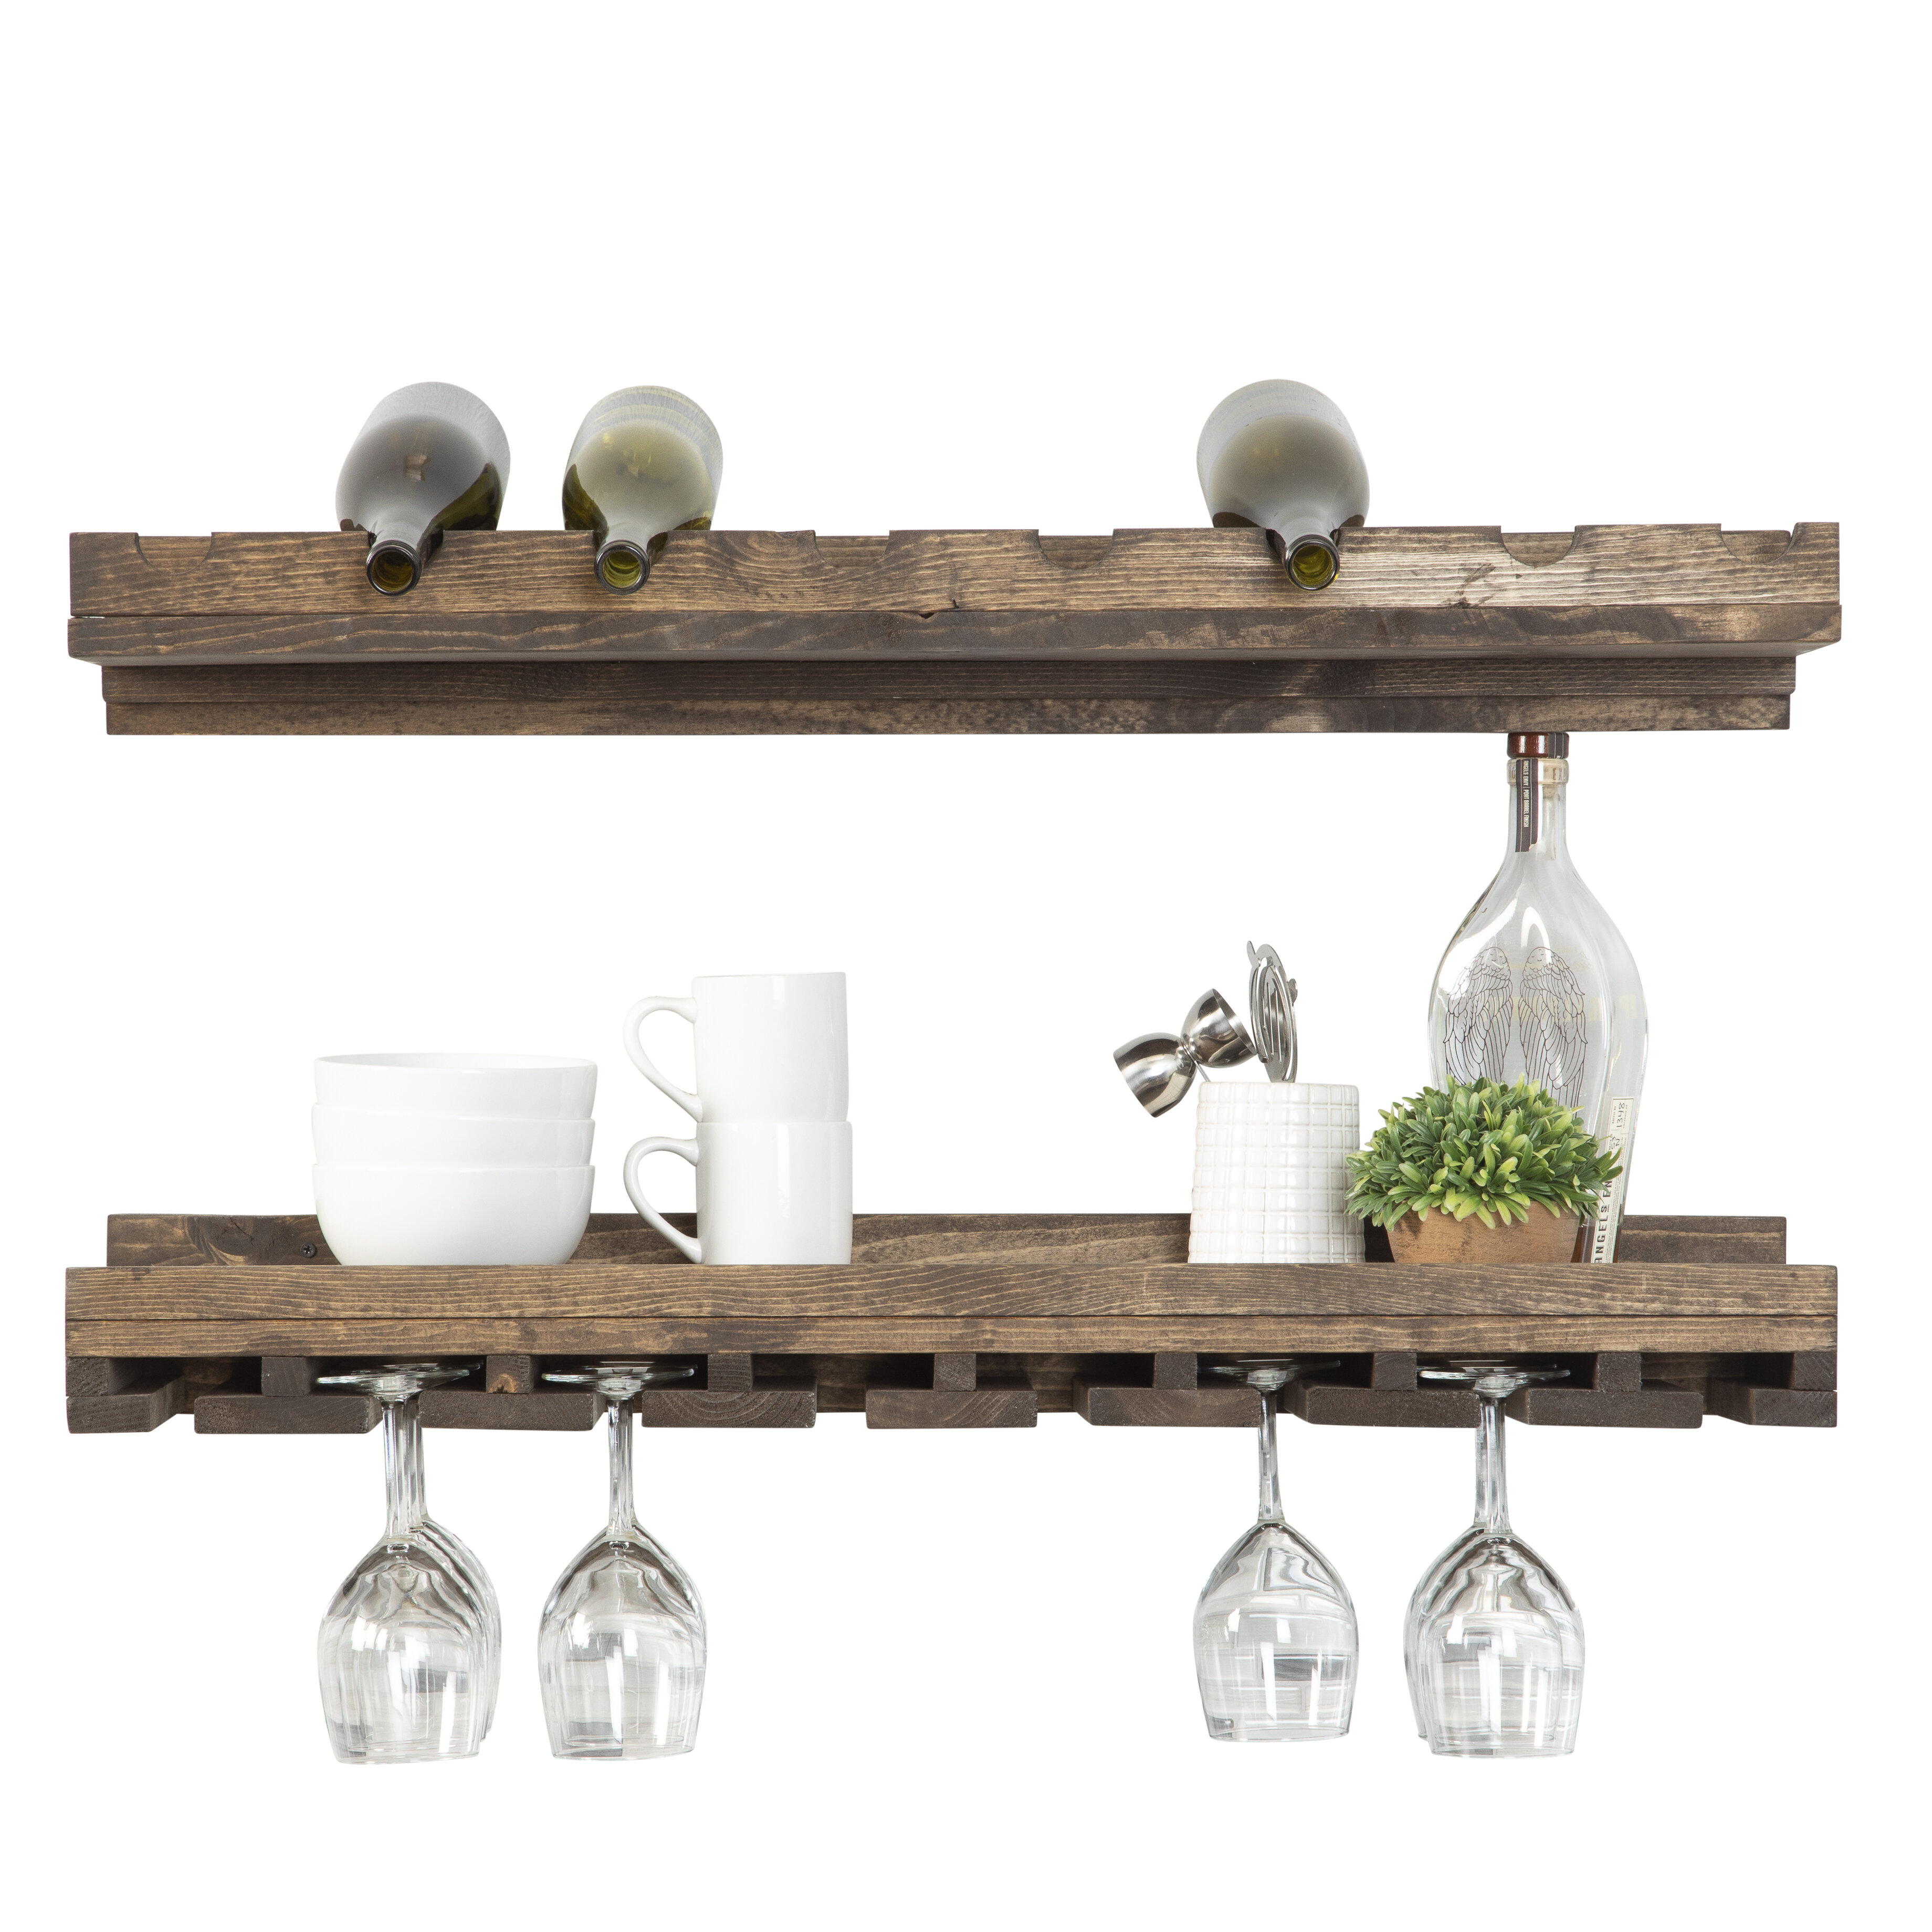 Berlyn Solid Wood Wall Mounted Wine Bottle Glass Rack Reviews